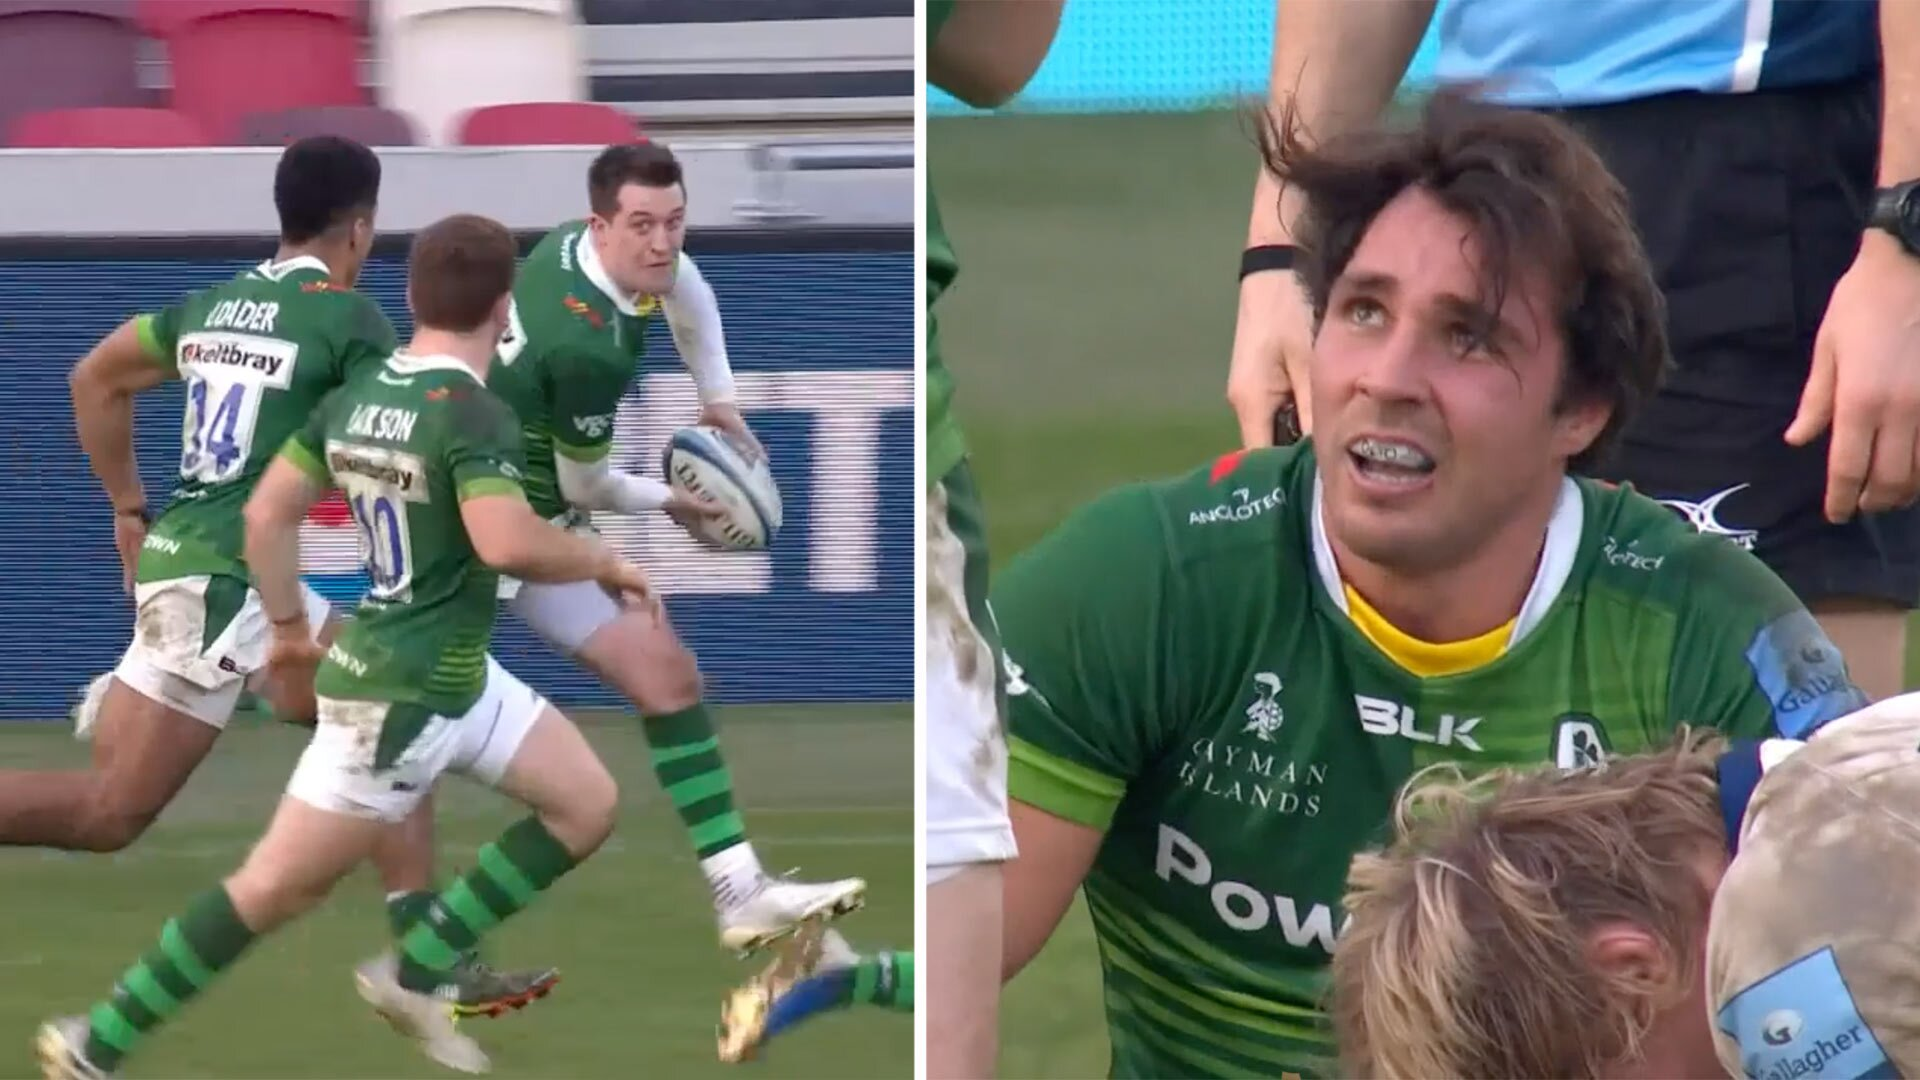 Rugby today witnessed one of the worst botched tries ever